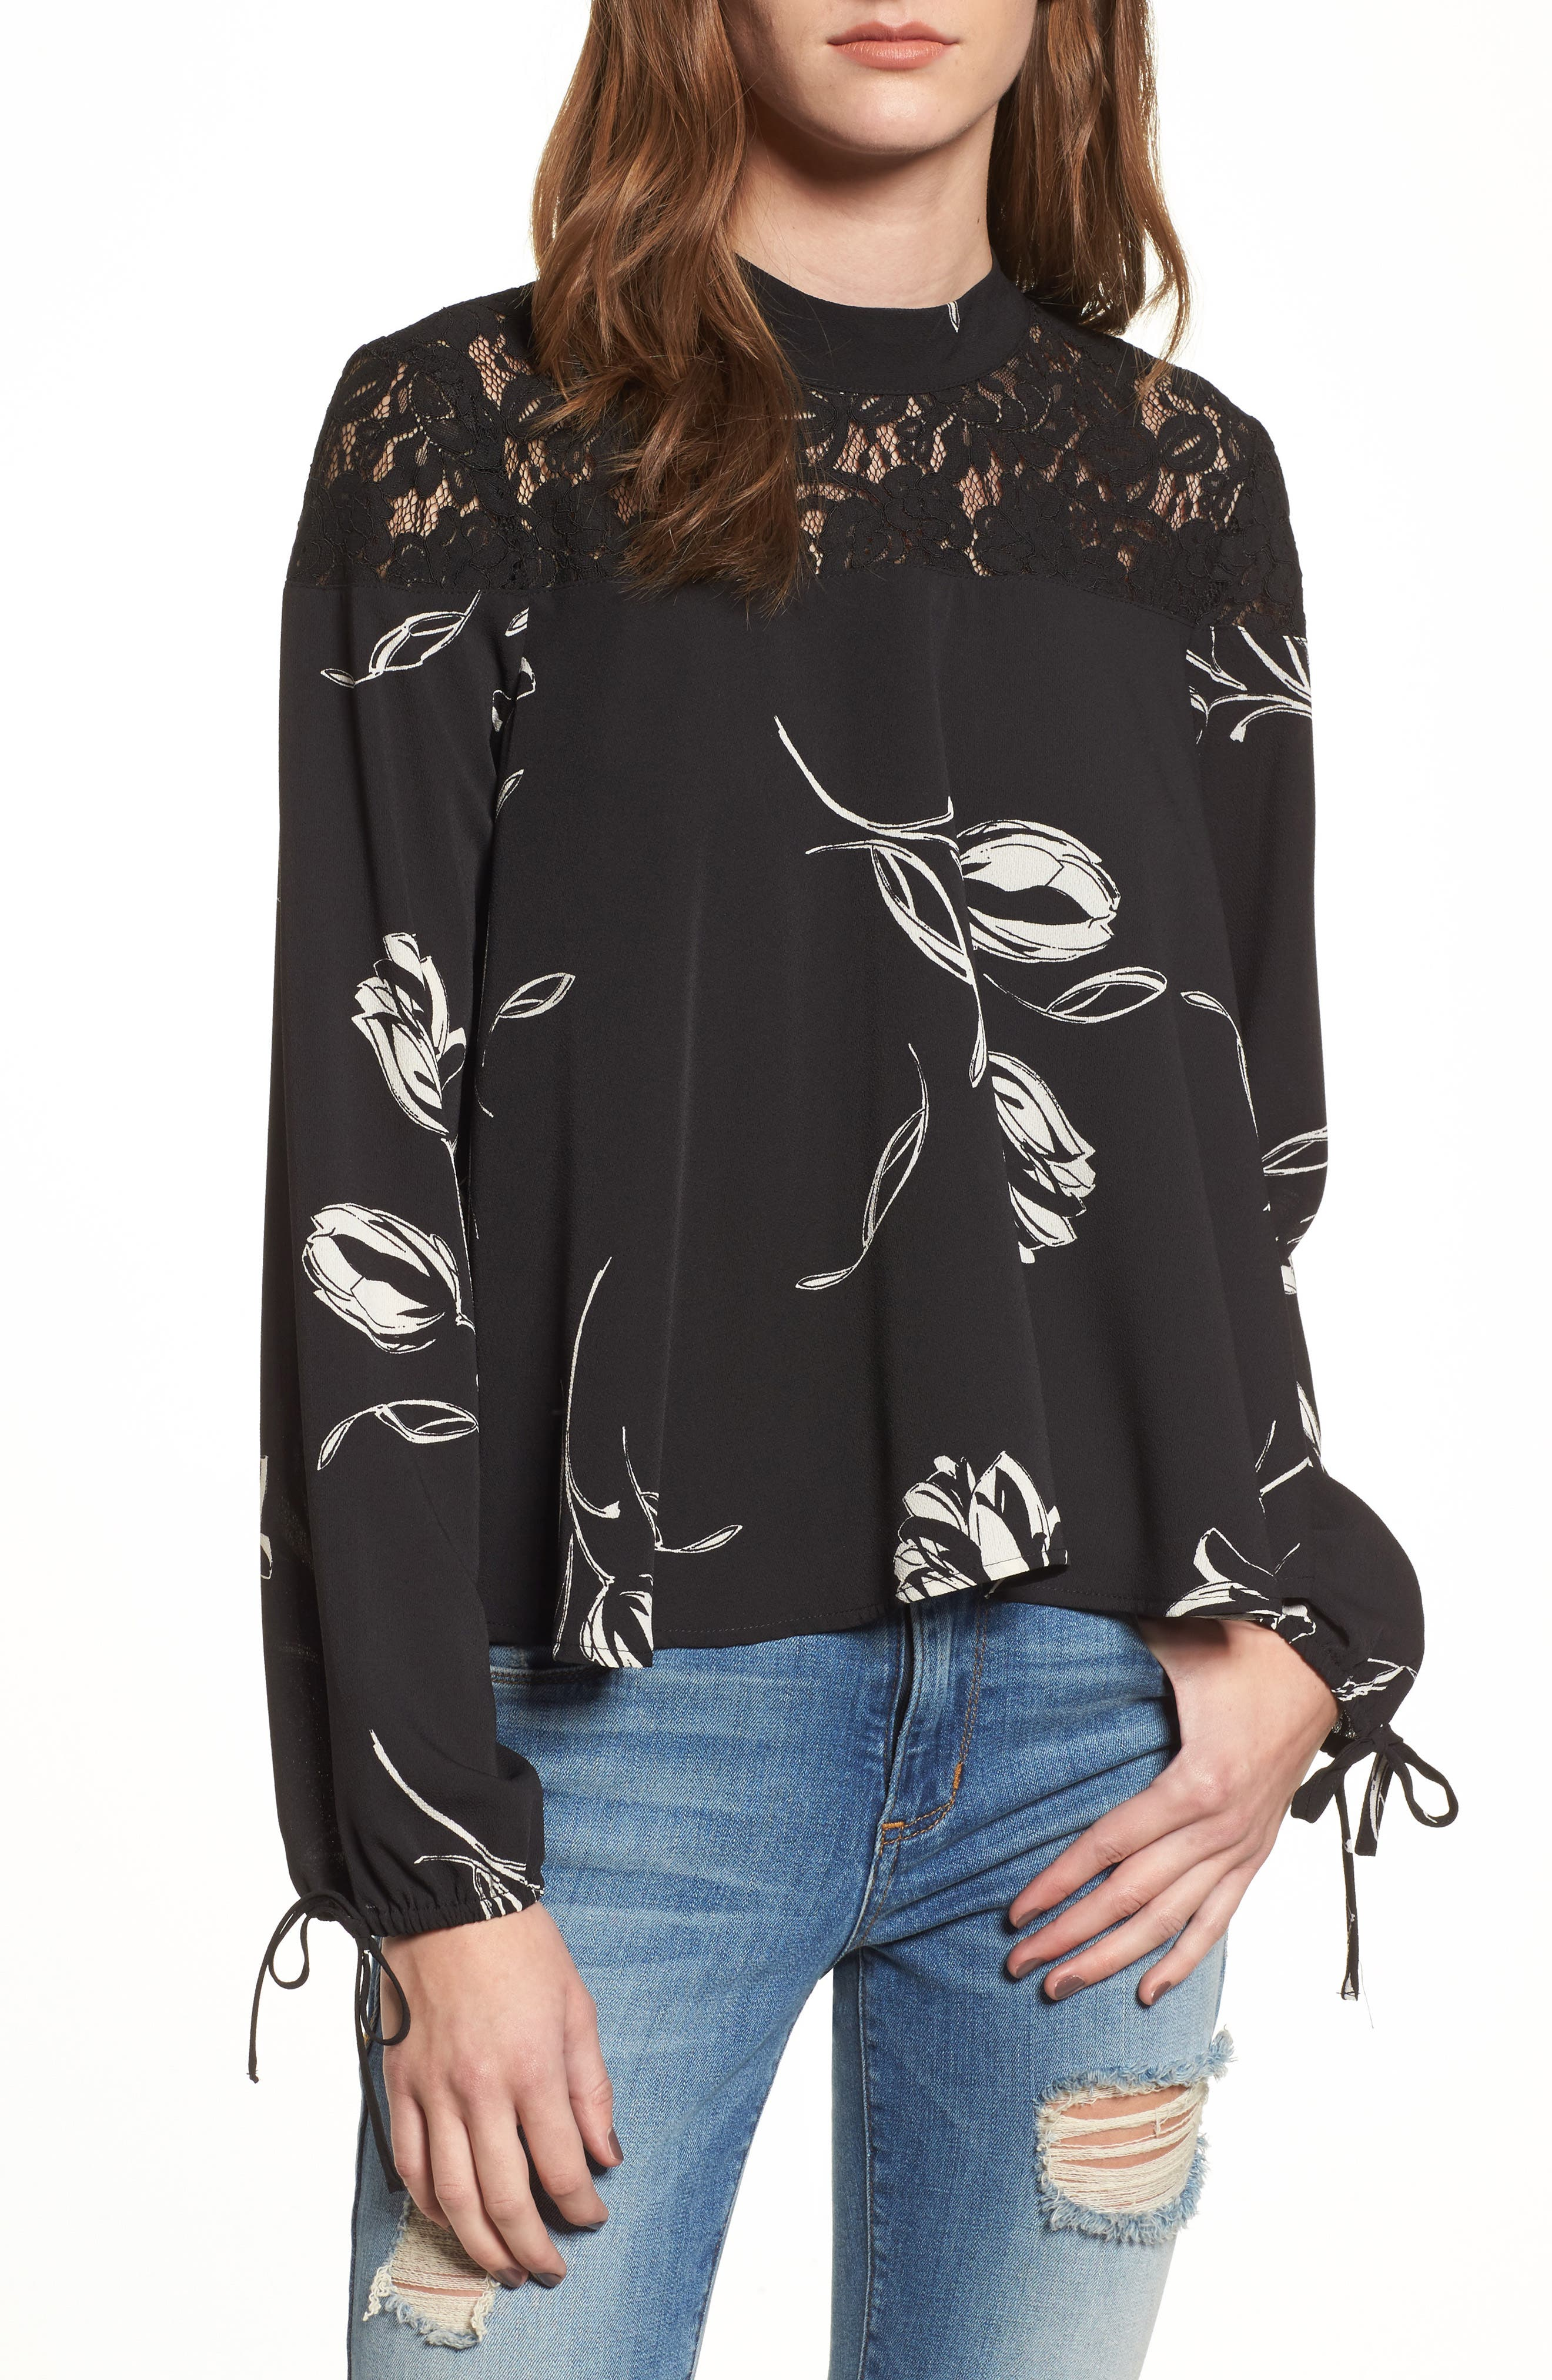 Main Image - Band of Gypsies Lace Yoke Floral Print Blouse